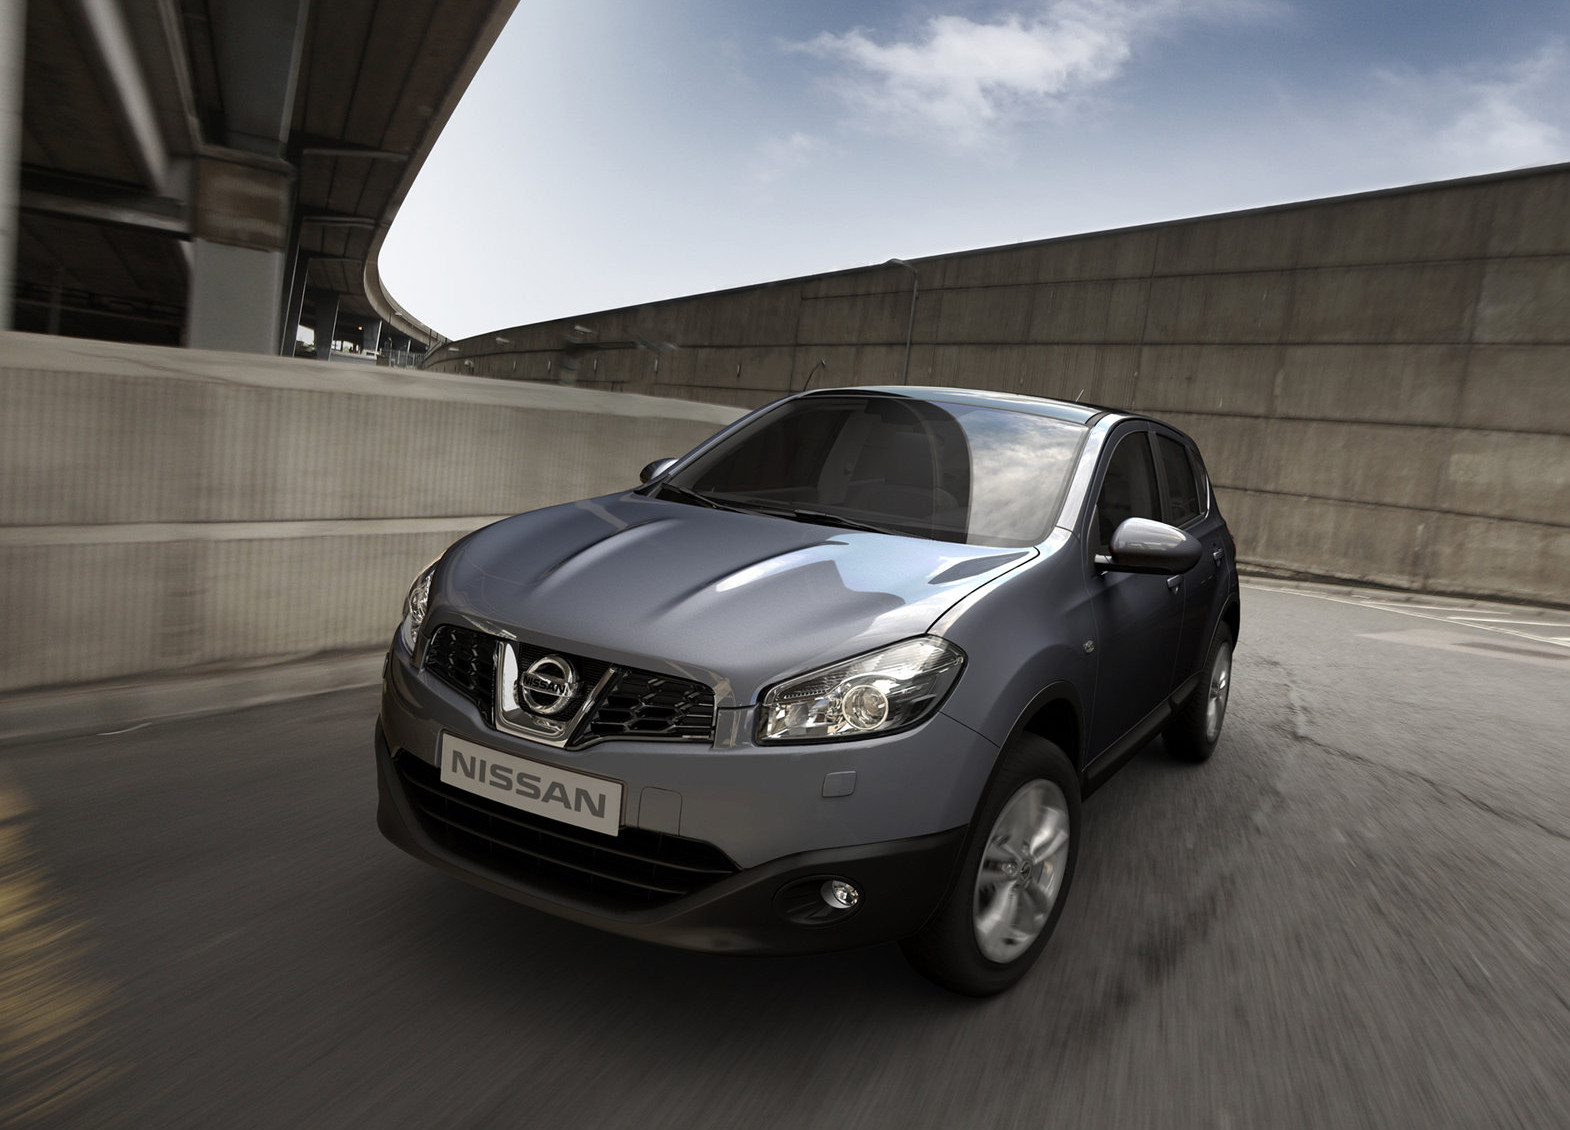 nissan qashqai is one of the most reliable cars in germany autoevolution. Black Bedroom Furniture Sets. Home Design Ideas